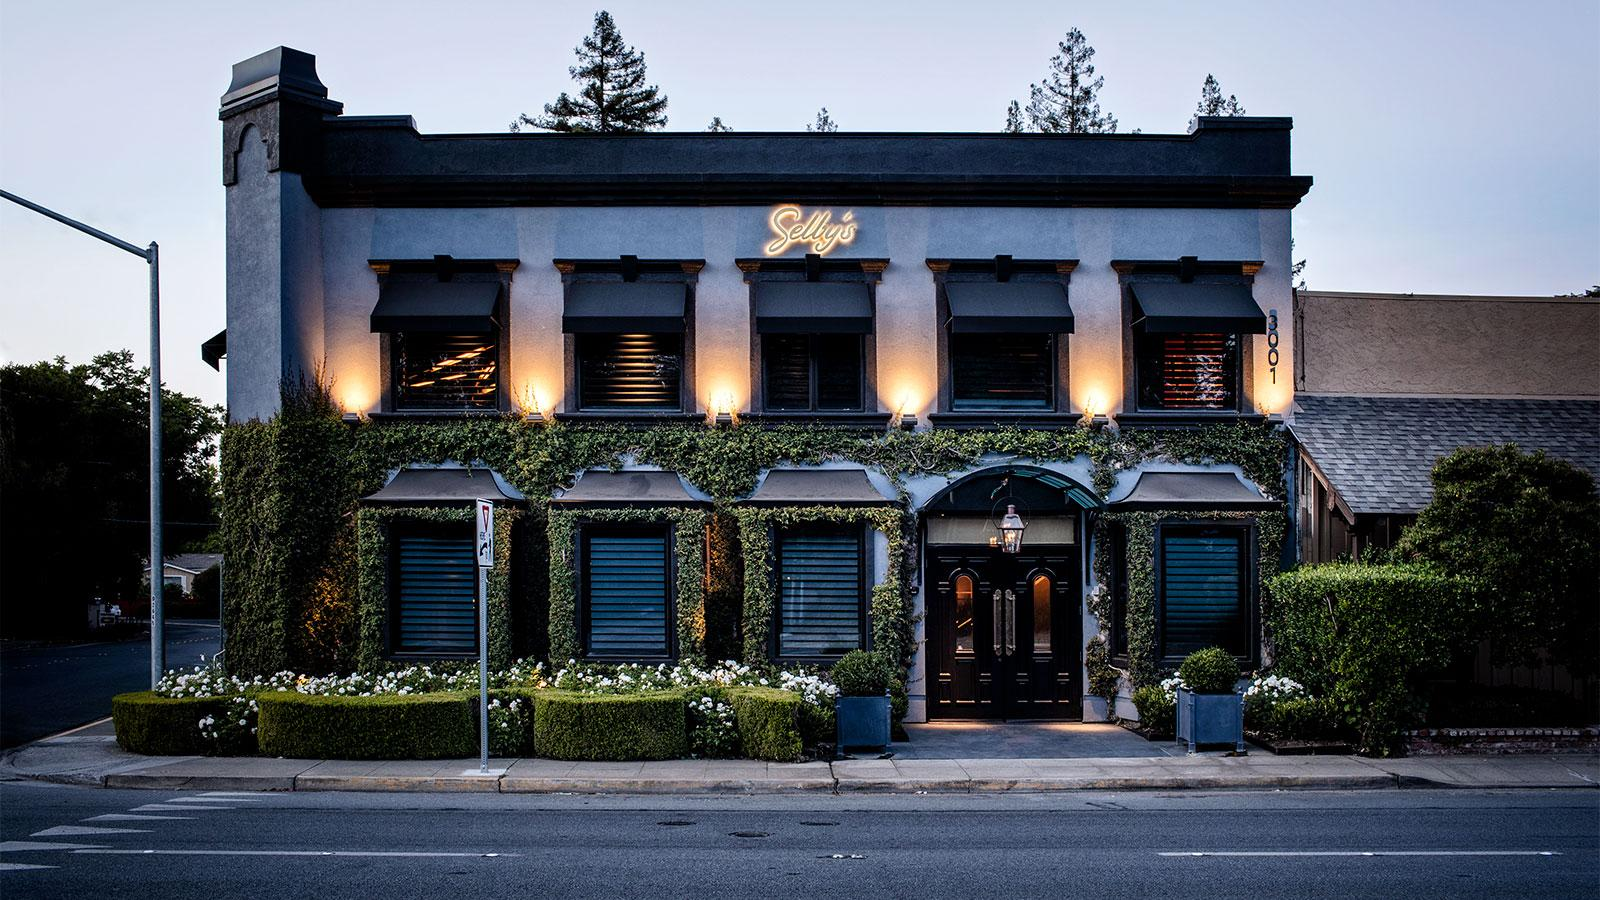 Team Behind Two Grand Award Winners Opens Selby's in Silicon Valley